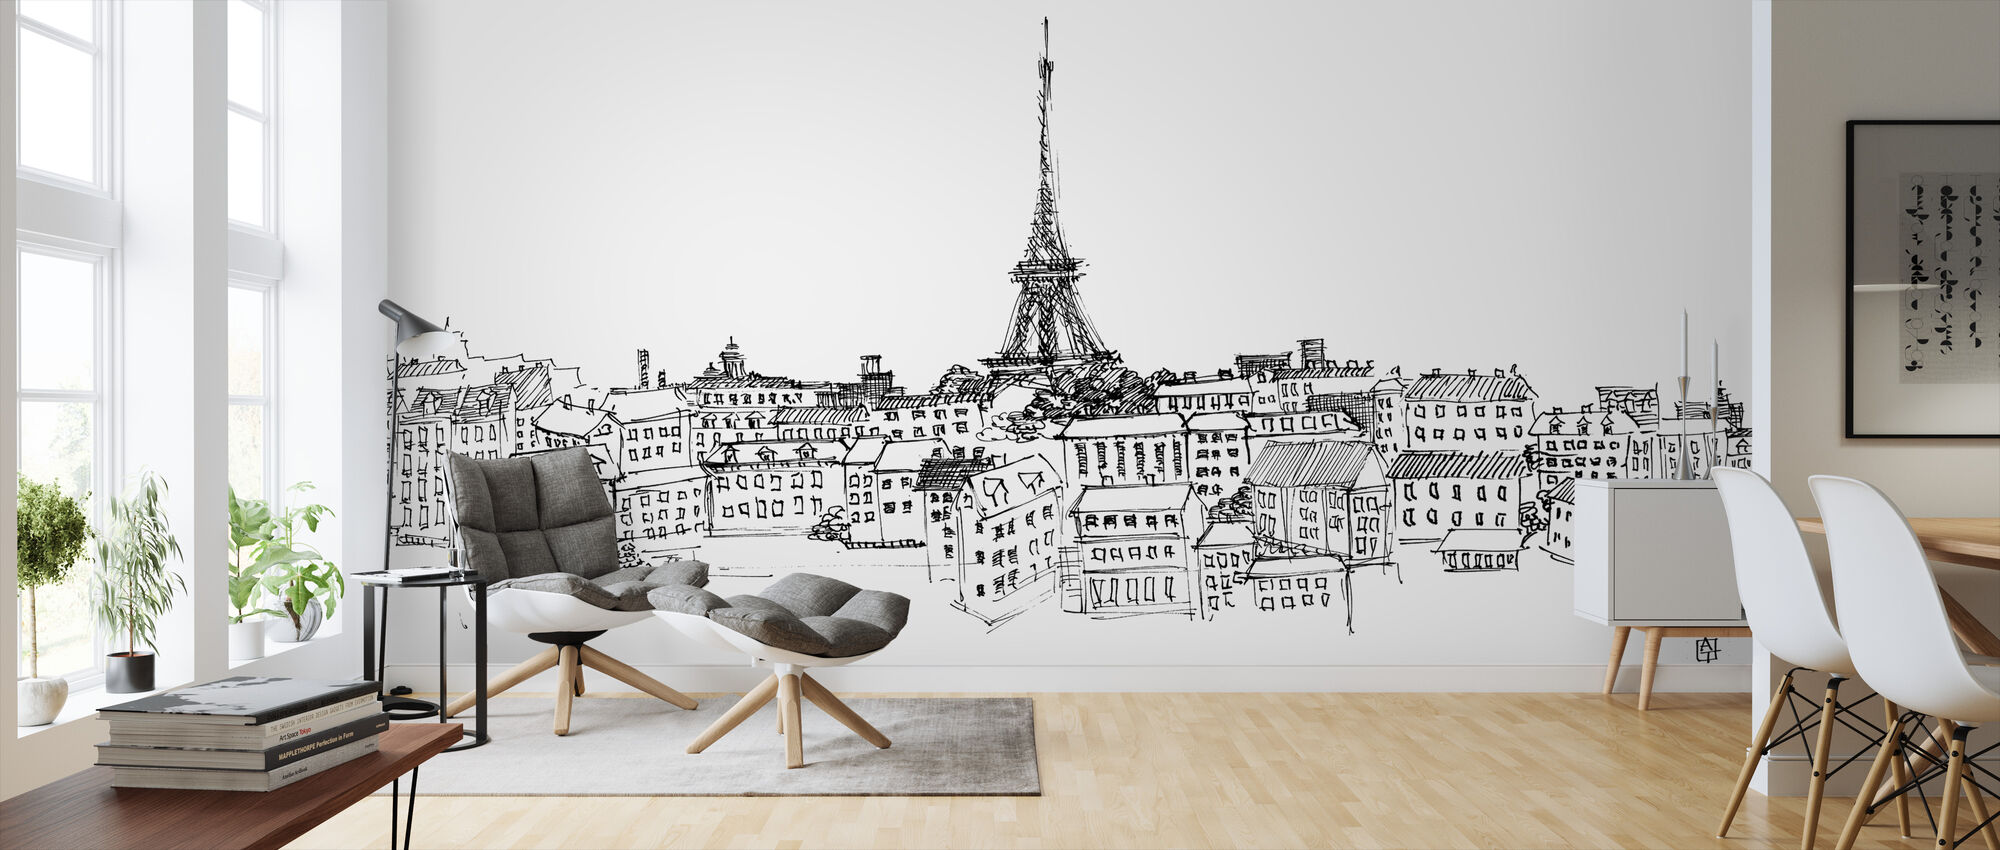 Avery Tillmon - Paris Skyline - Wallpaper - Living Room